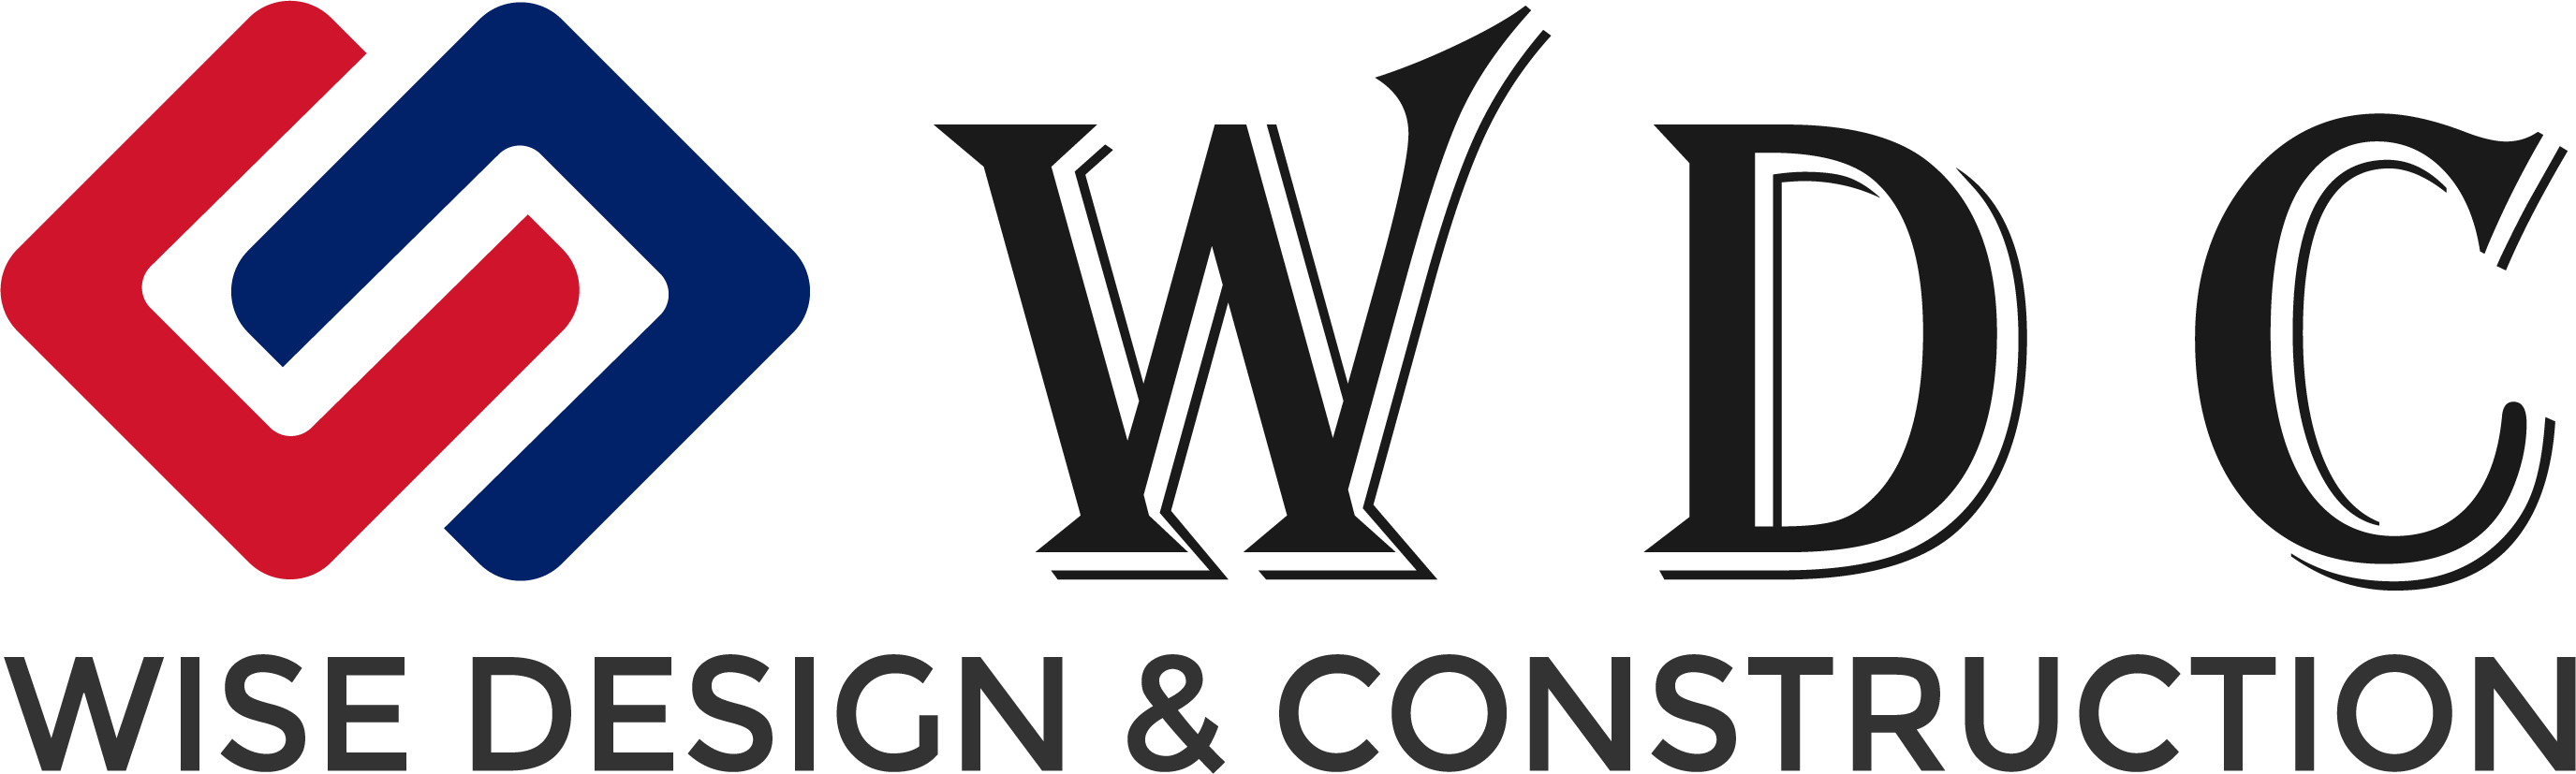 Wise Design & Construction